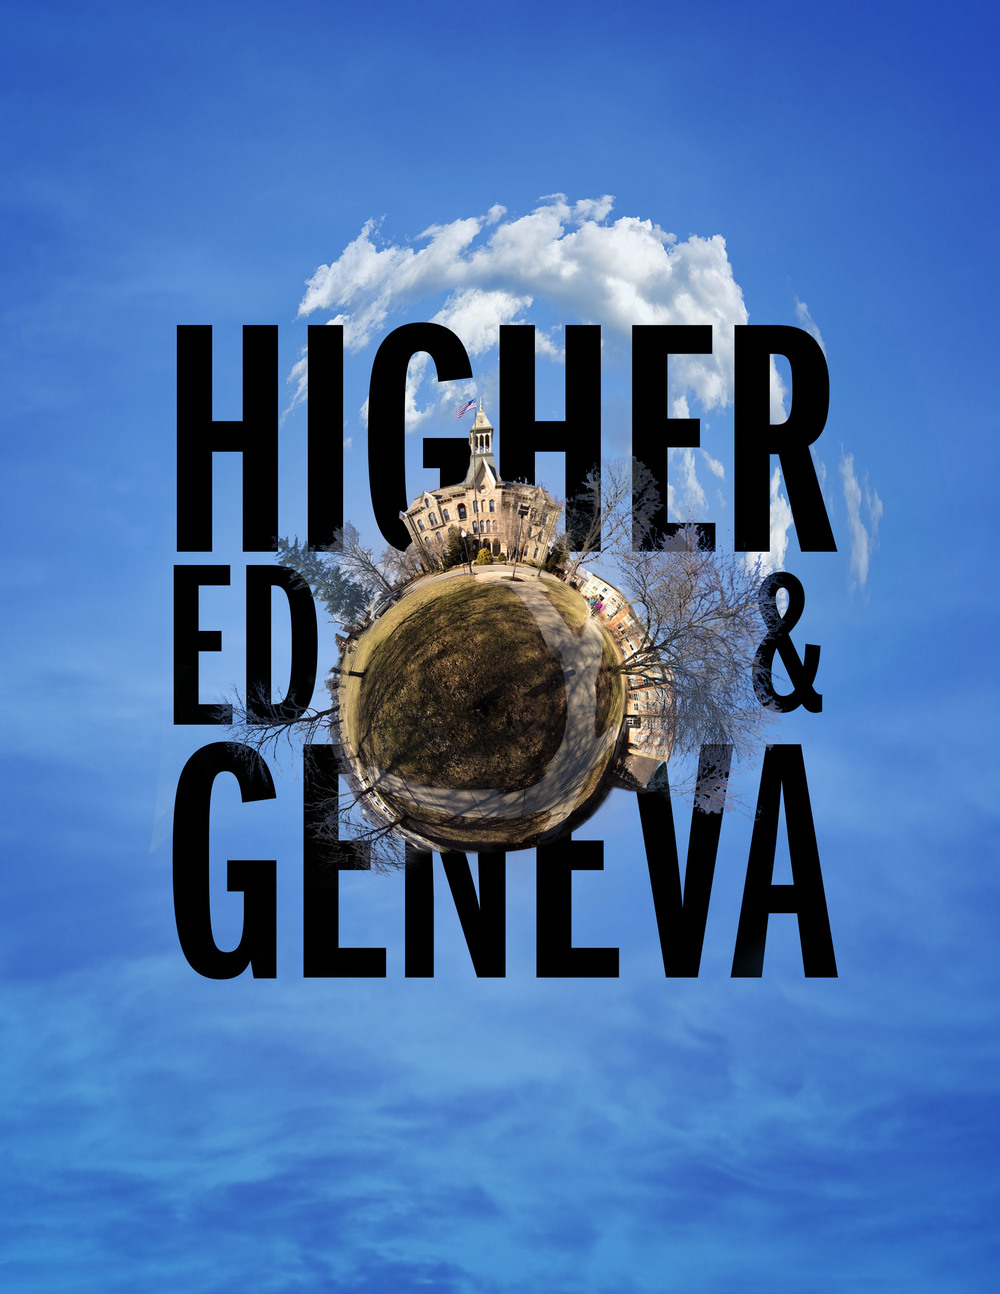 A front cover feature that I designed for the Geneva Cabinet on the state of higher education.